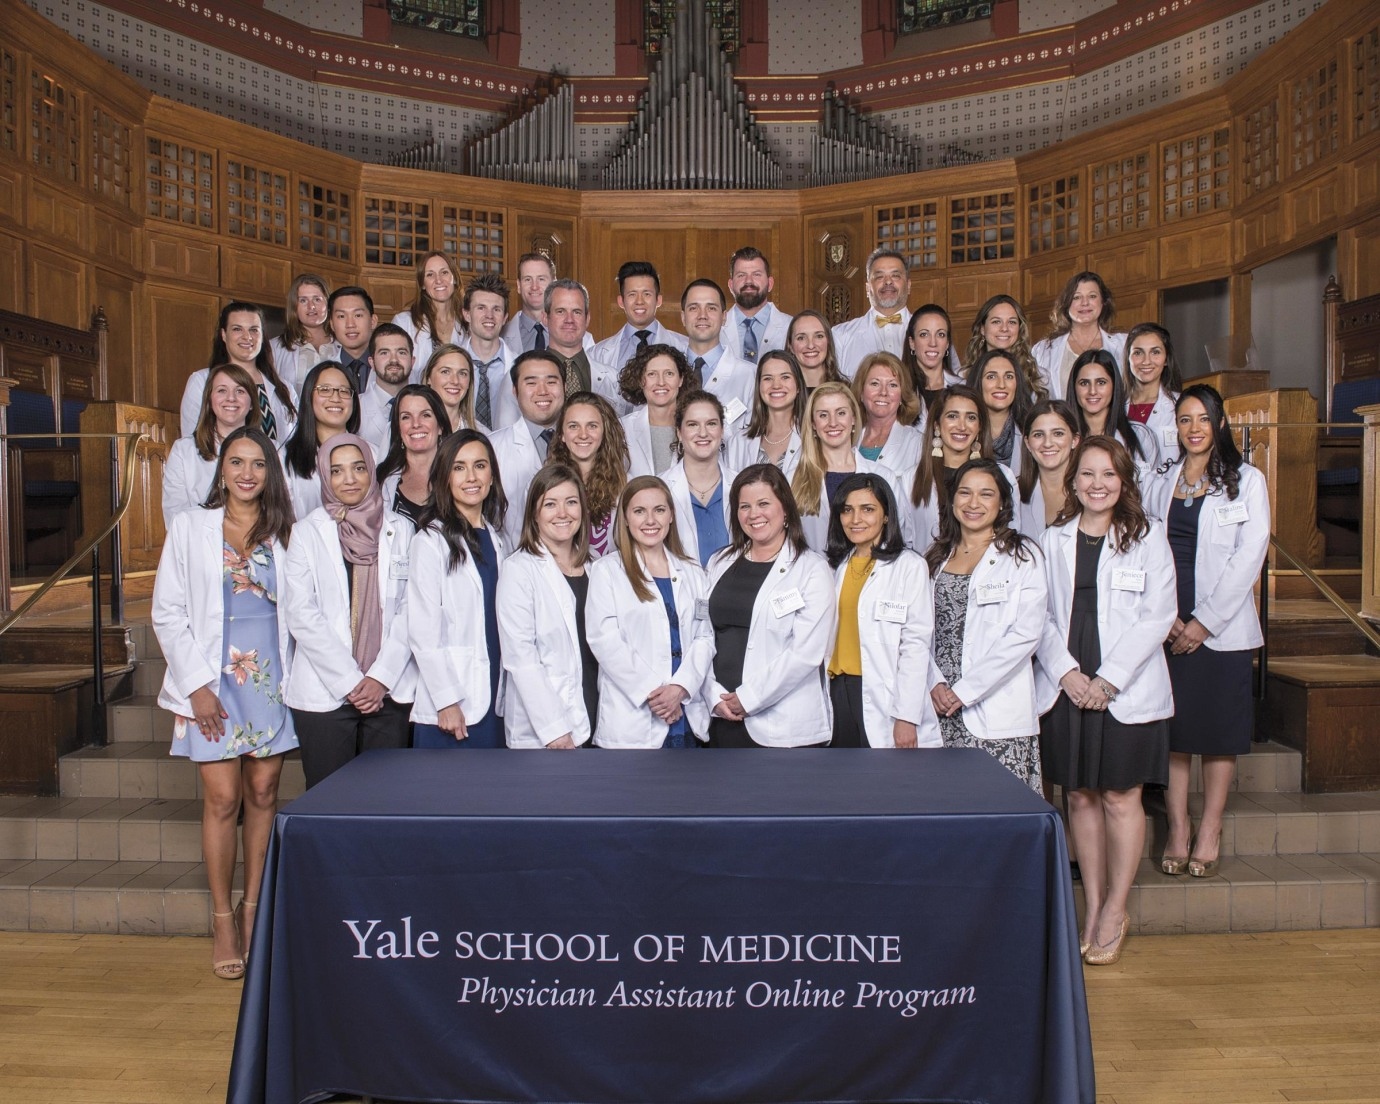 The first class enrolled in the School of Medicine's inaugural physician assistant online program came to Yale in March and received their ceremonial white coats at Battell Chapel.